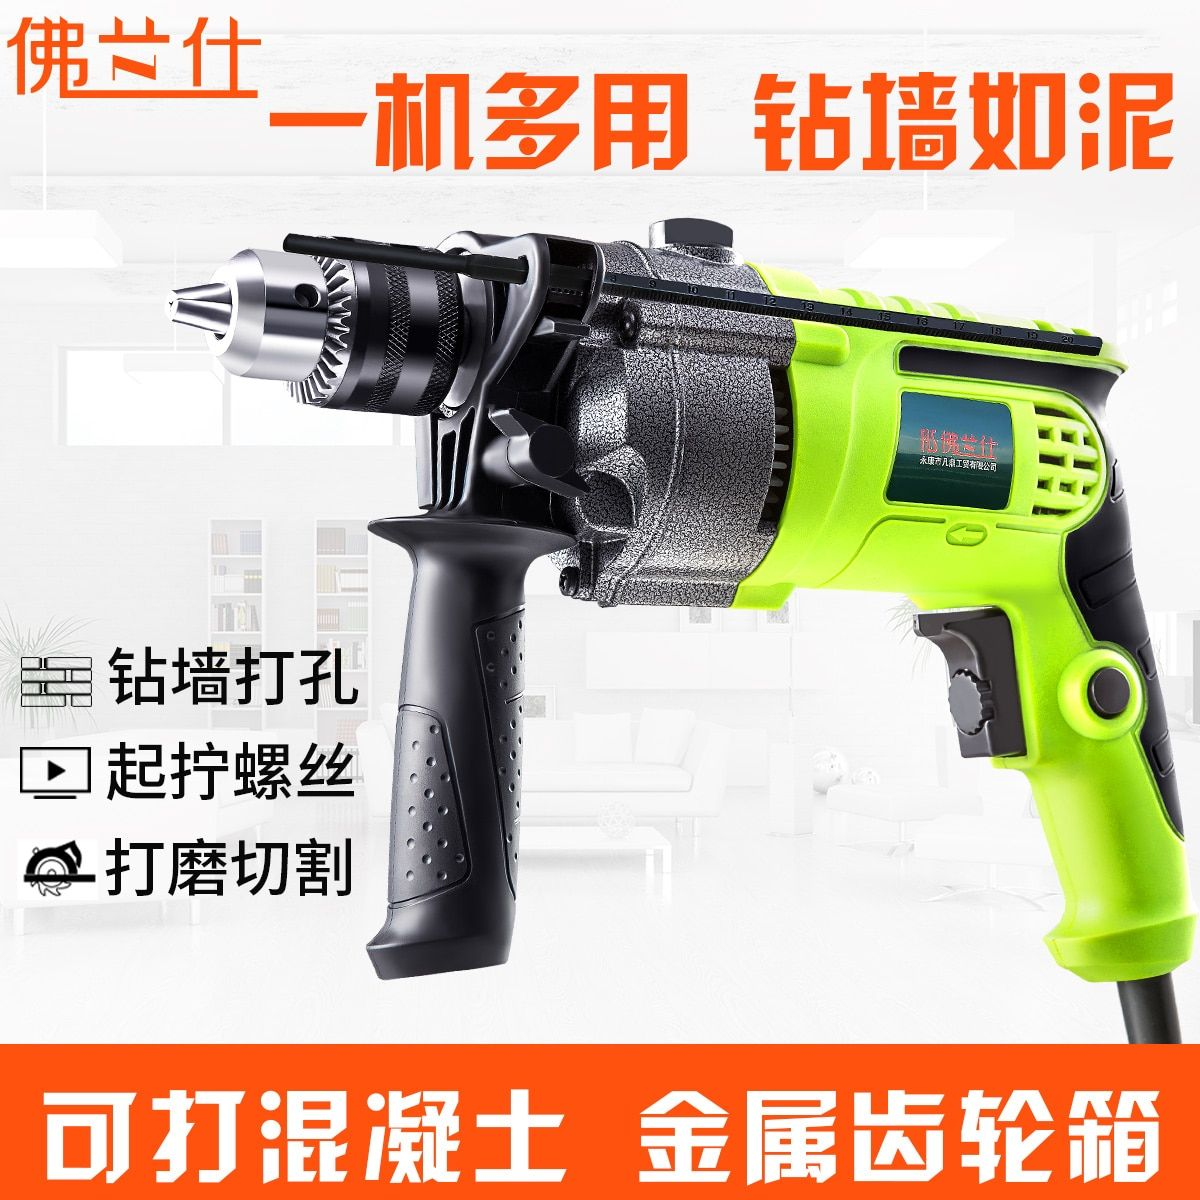 Electric Drill Home Drilling Through Wall Impact Multifunctional